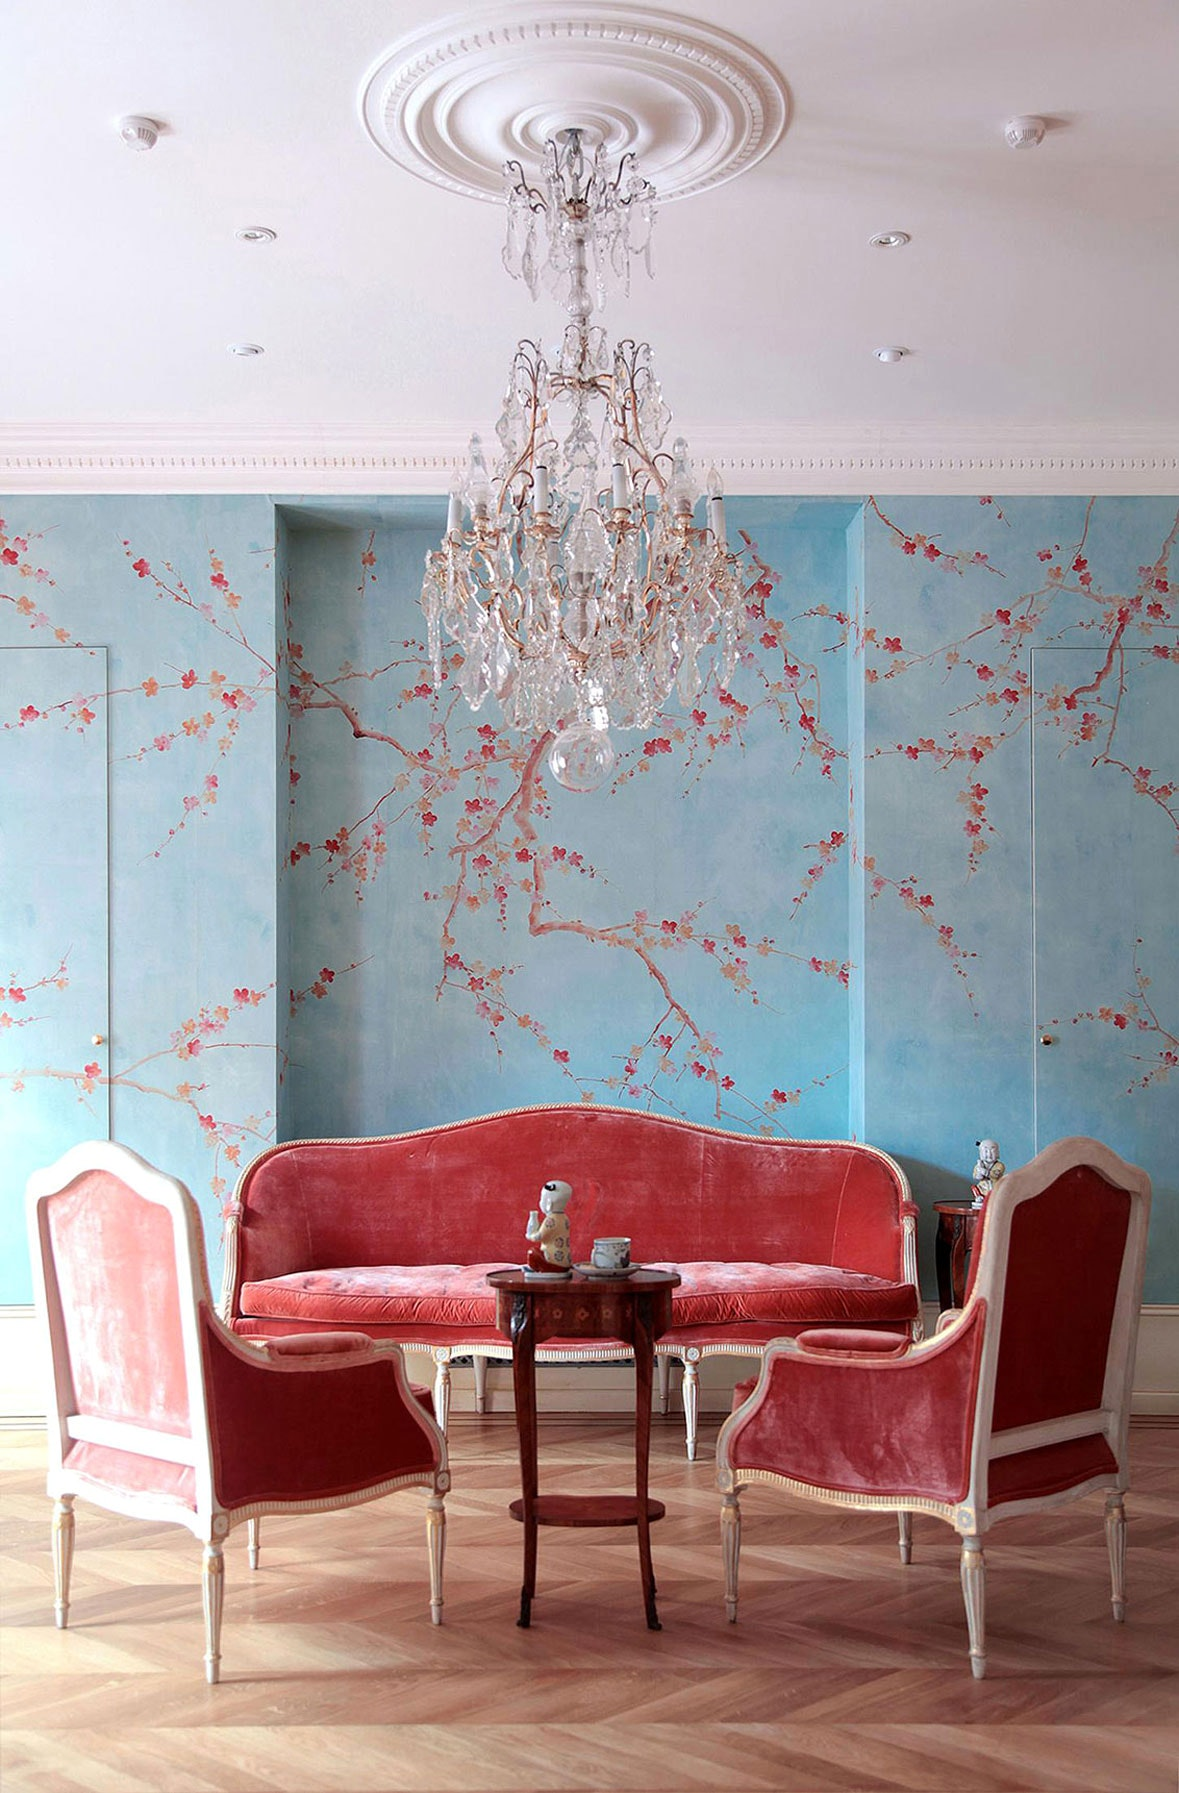 Cherryblossom Wallpaper by De gournay - Interior Design Trends 2018 - living room design ideas - feminine living rooms - wallpapers